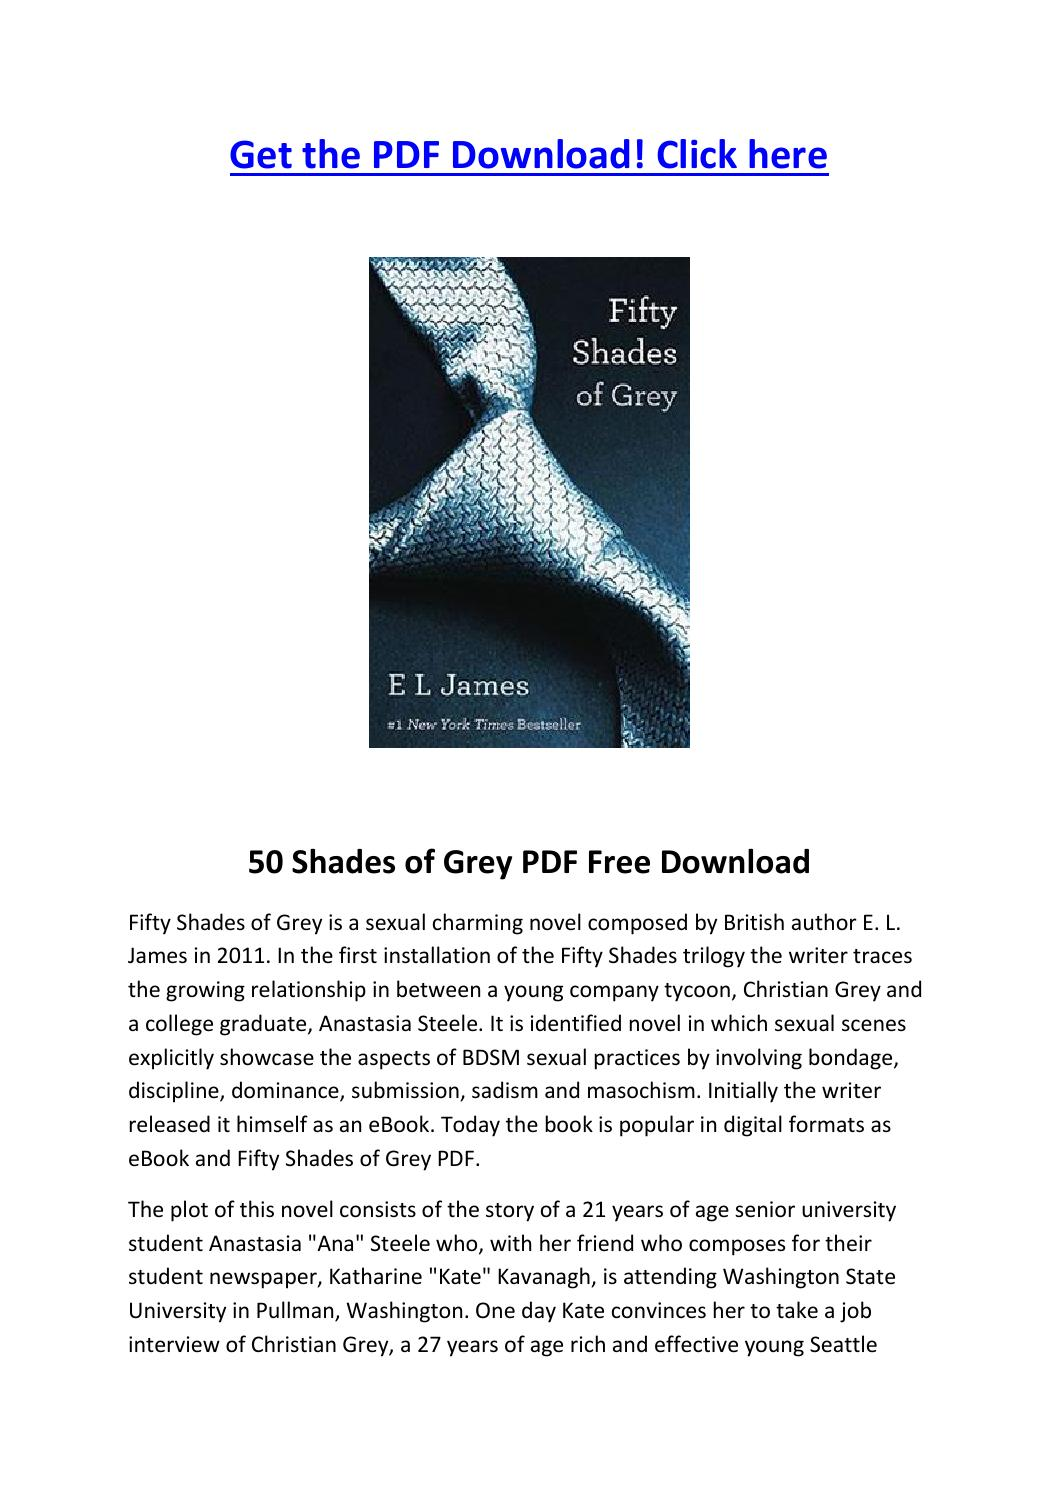 50 shades of grey book 1 pdf free